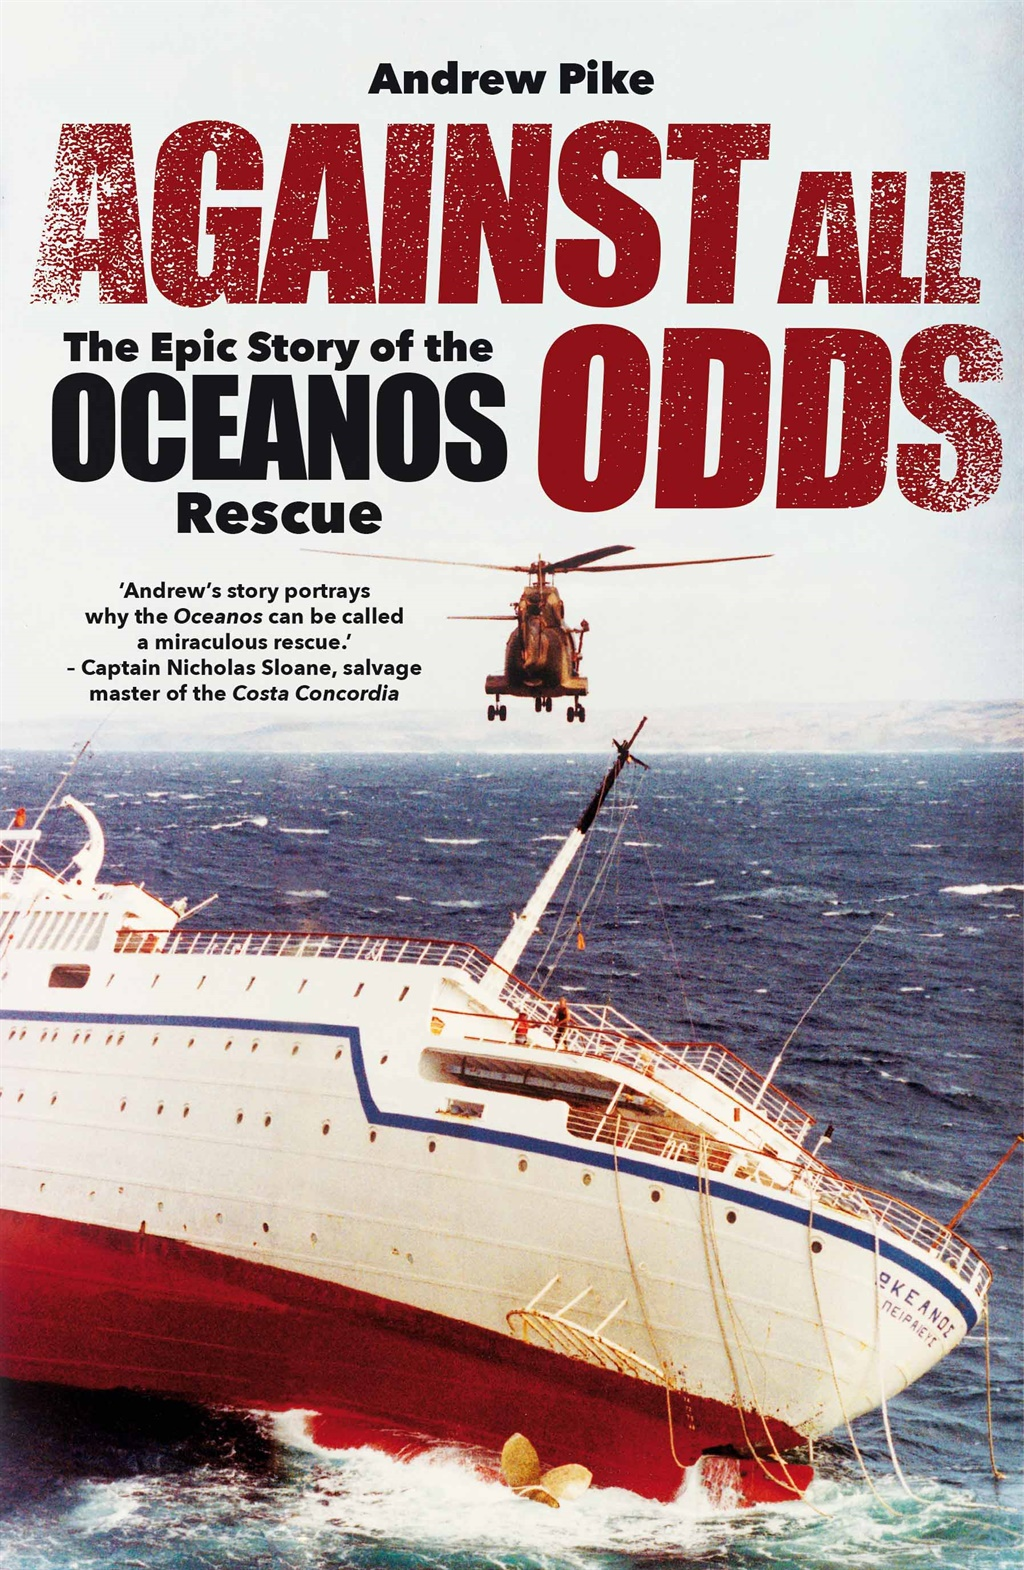 Against All Odds: The Epic Story of the Oceanos Rescue by Andrew Pike, published by Jonathan Ball Publishers.